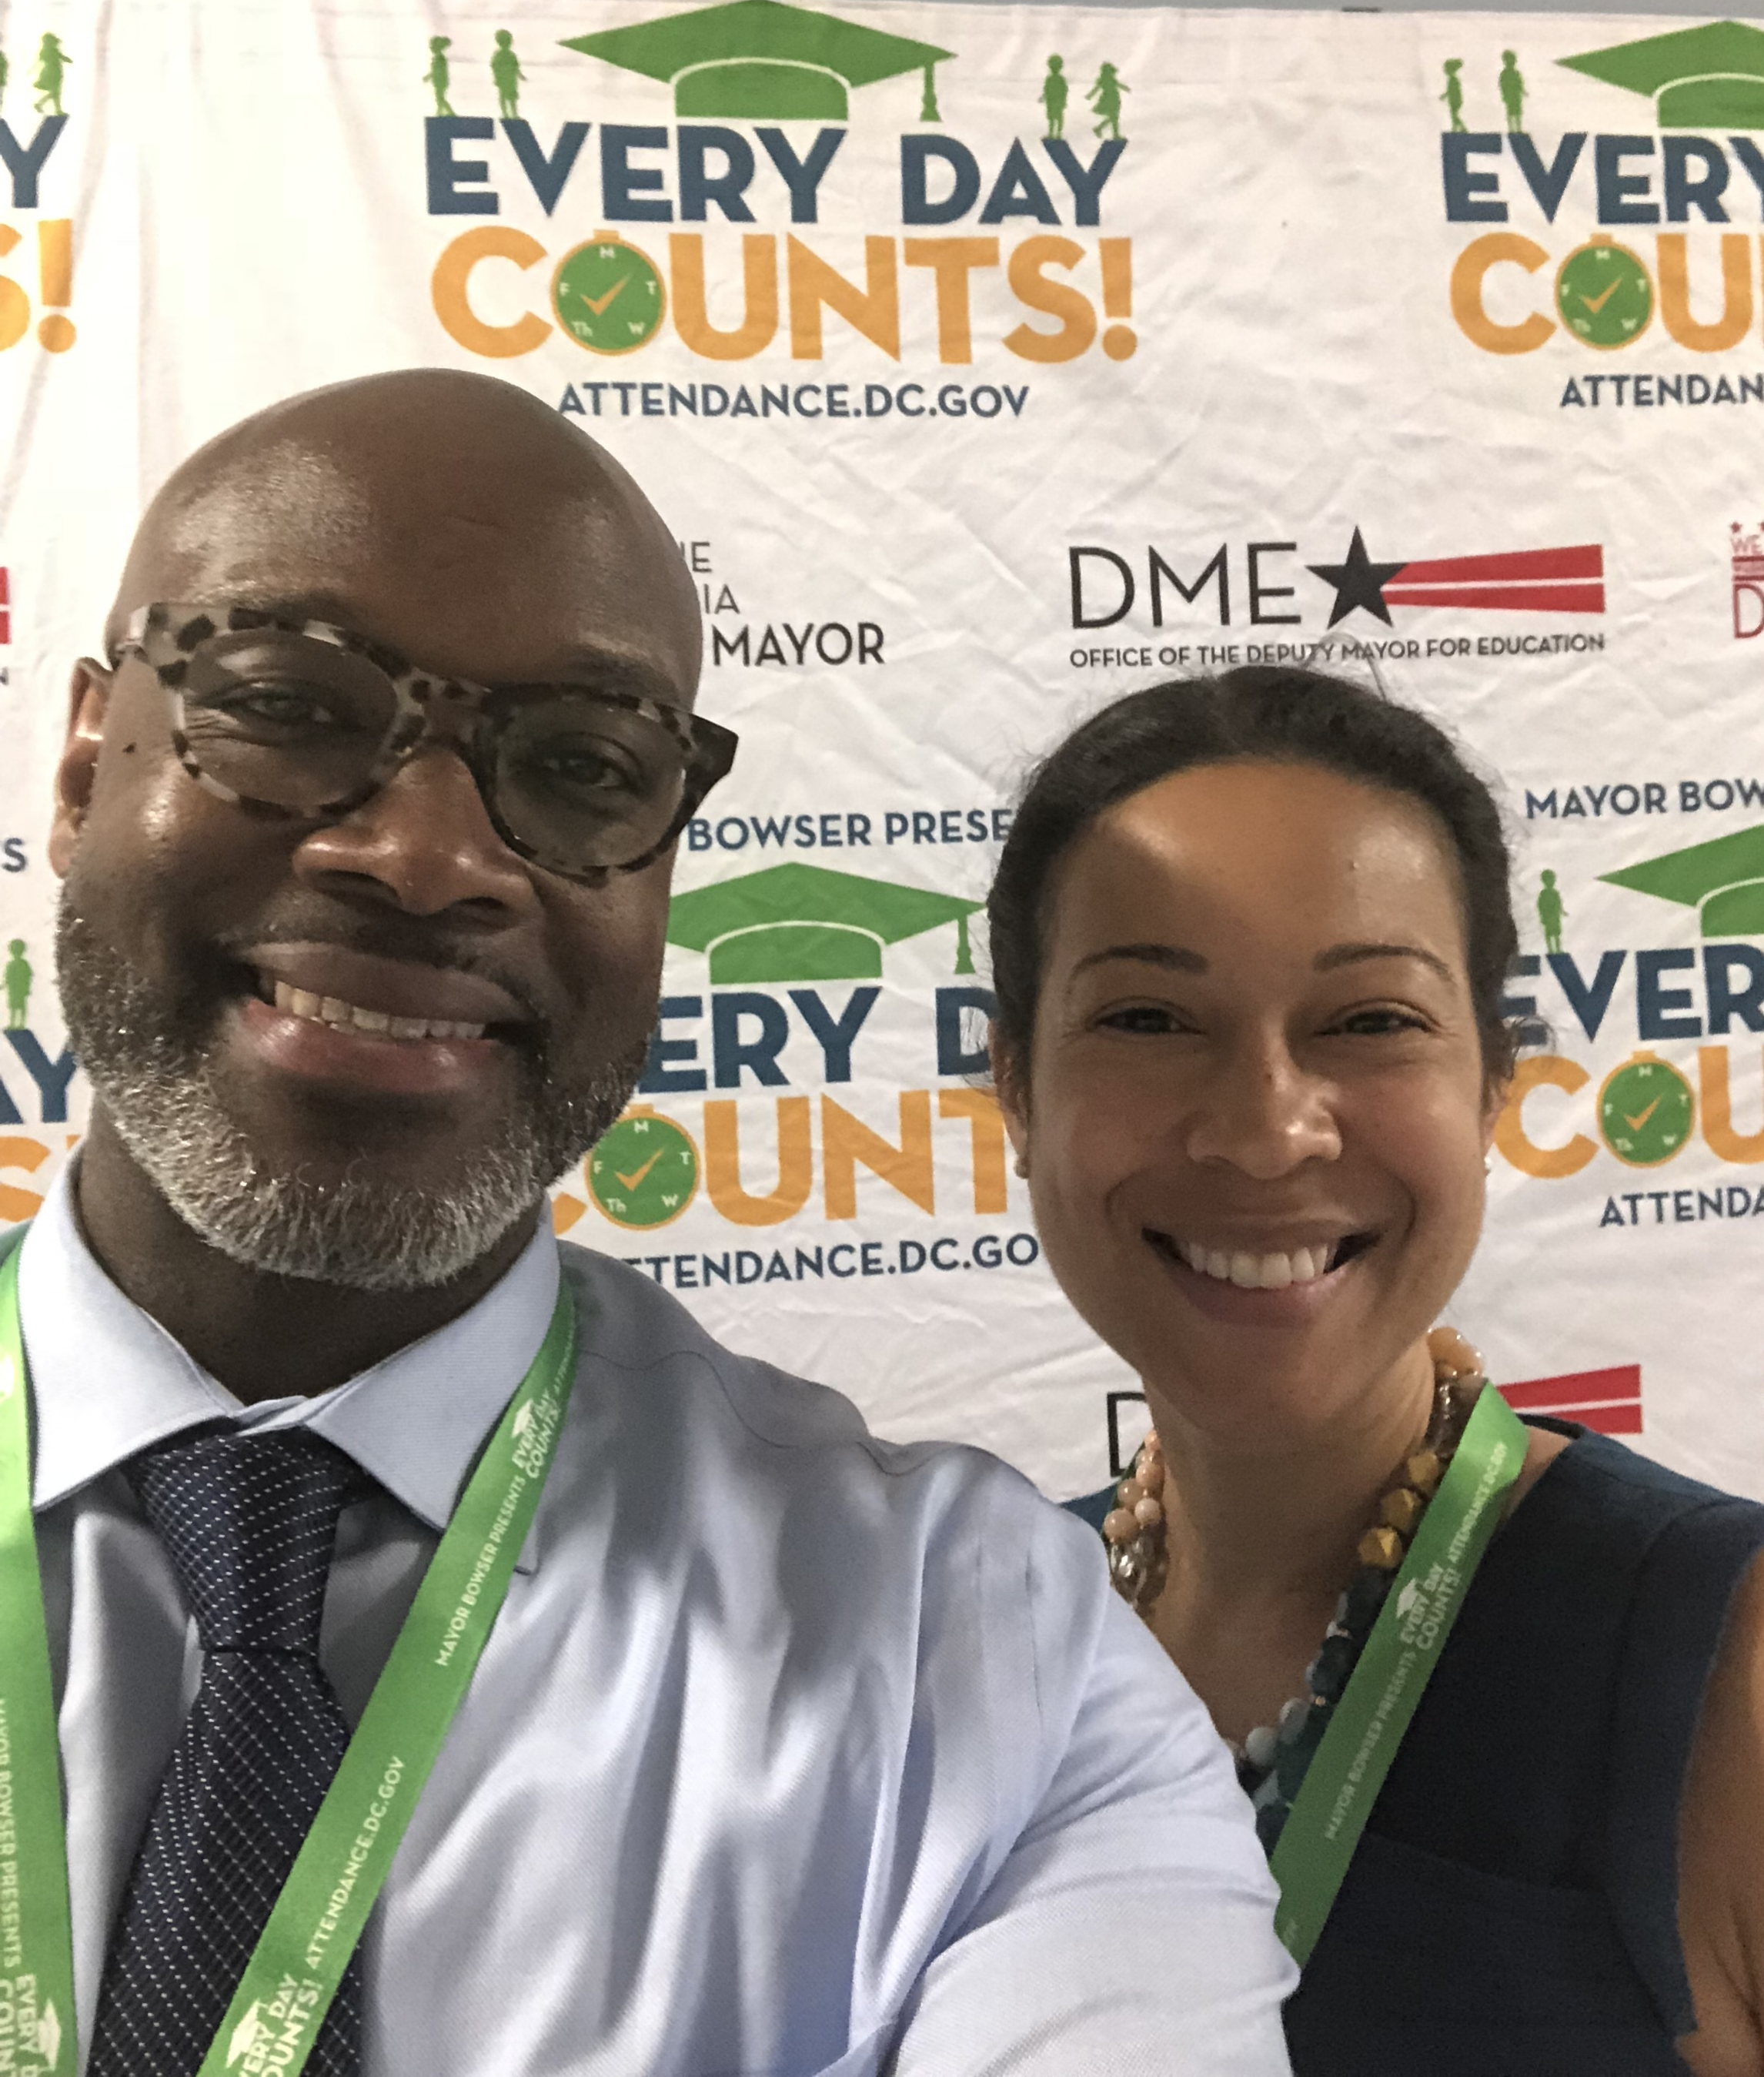 Co-presenting successful attendance management strategies at Every Day Counts Summit.